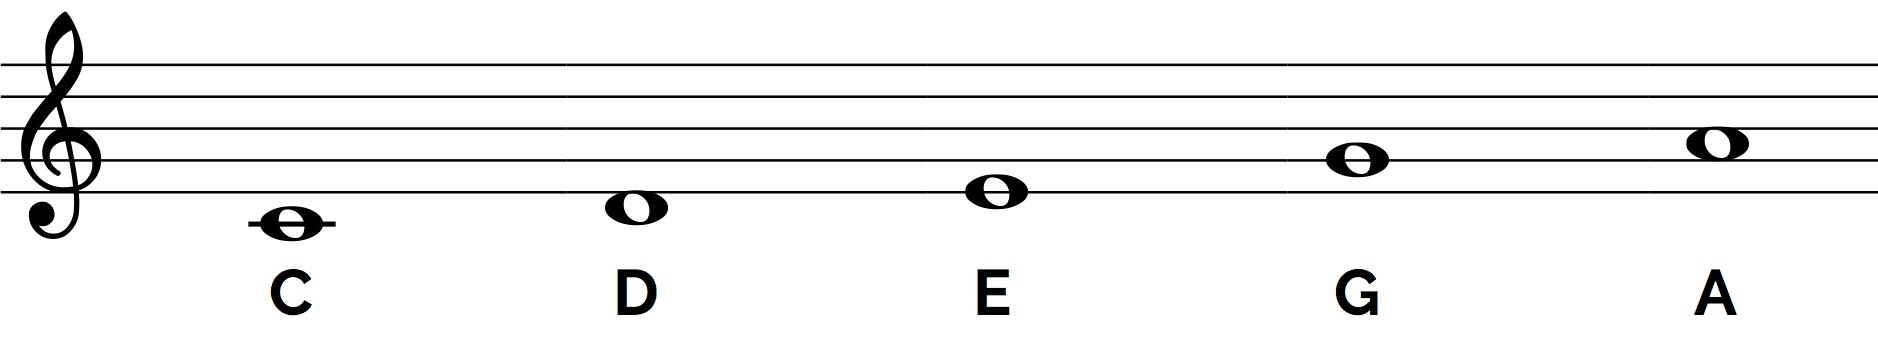 Pentatonic - C Major